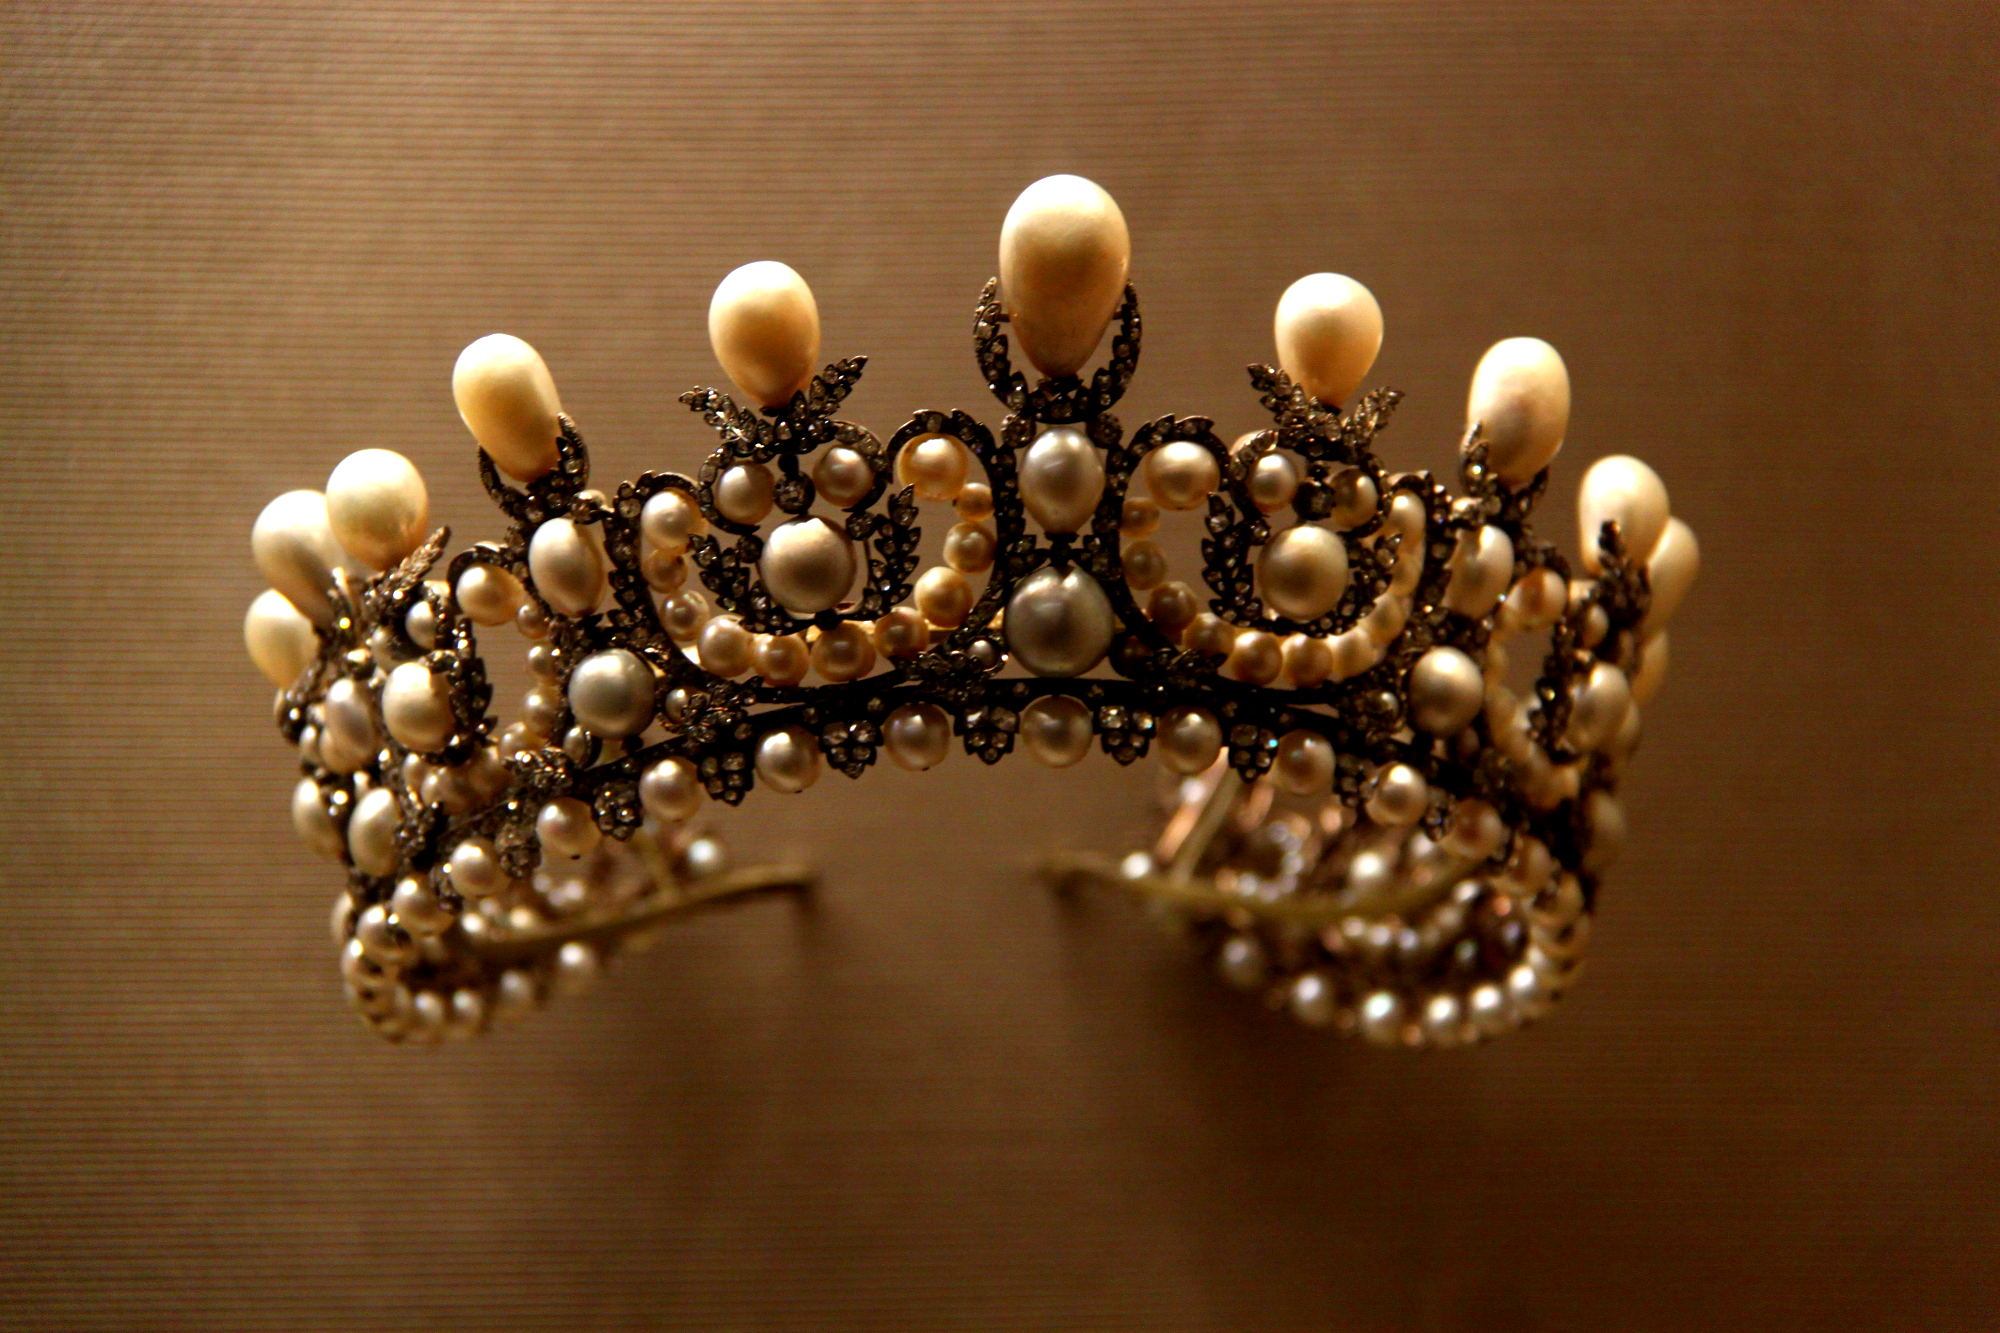 Princesses Jewelries Exhibited At The Louvre Museum